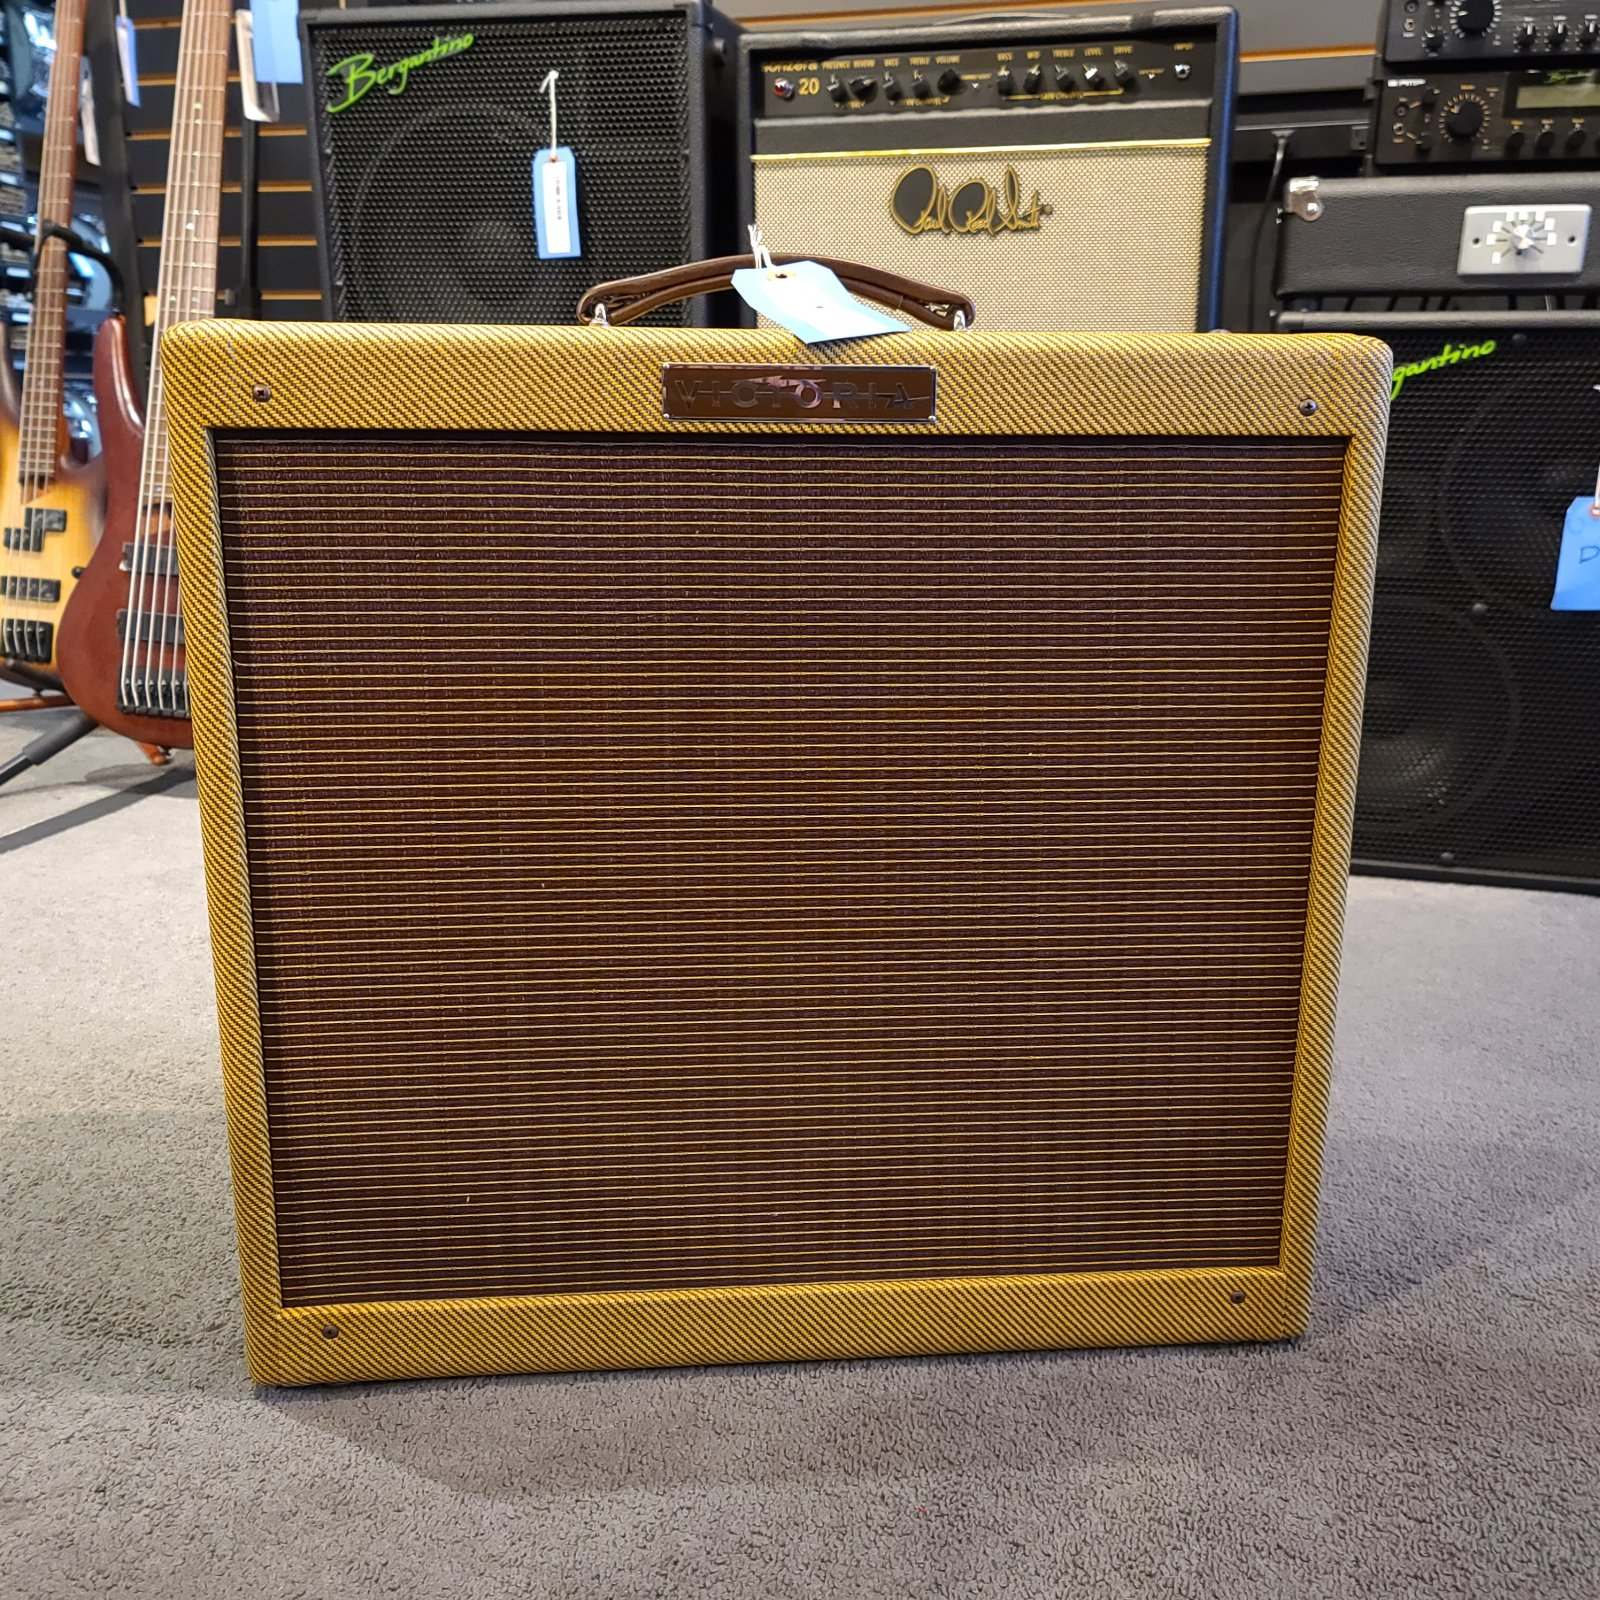 Used Victoria 35115-T Tweed Classic 1 x 15 Electric Guitar Amplifier w/Cover